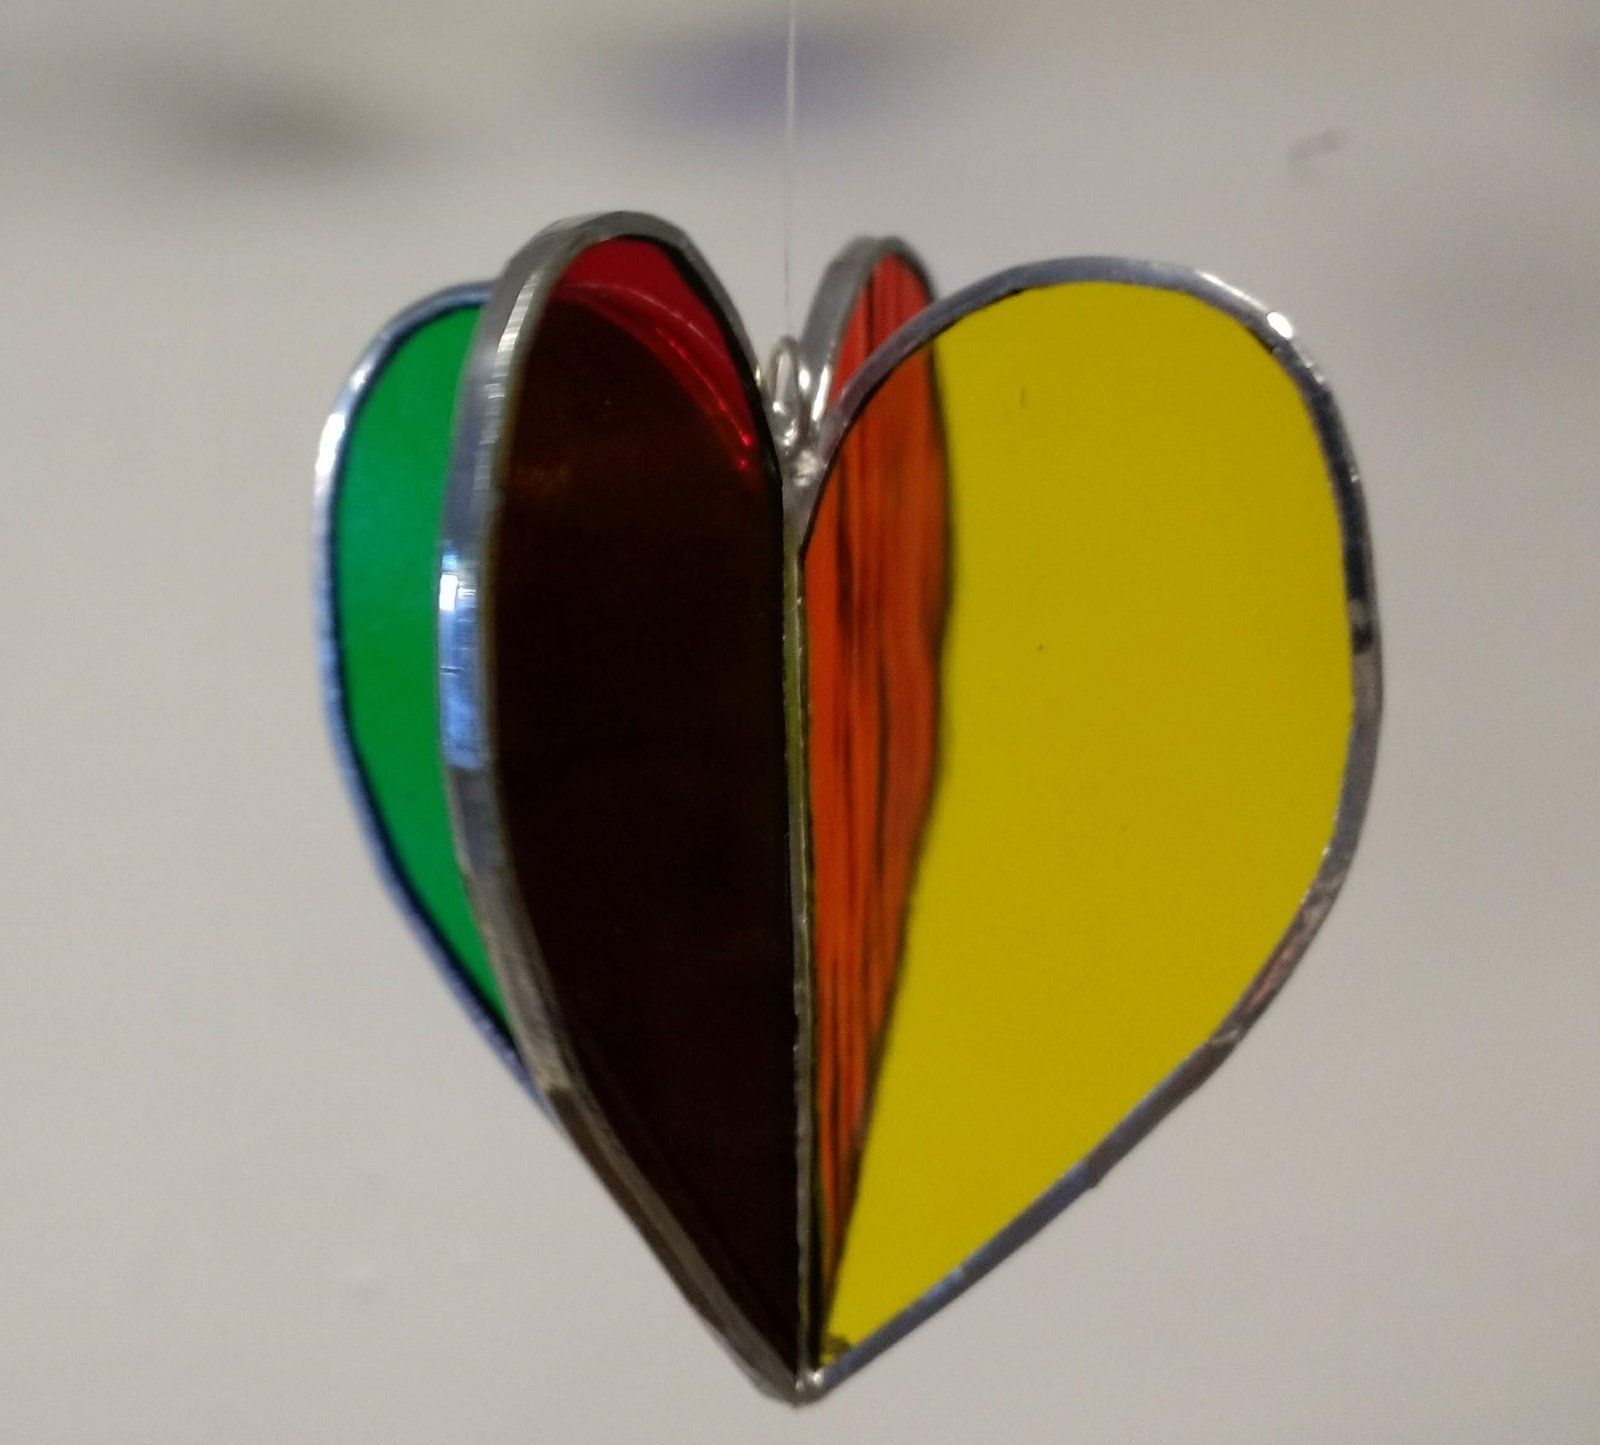 Choose A Color and A Charm Stained Glass Heart Suncatcher Heart Ornament or Window Hanging